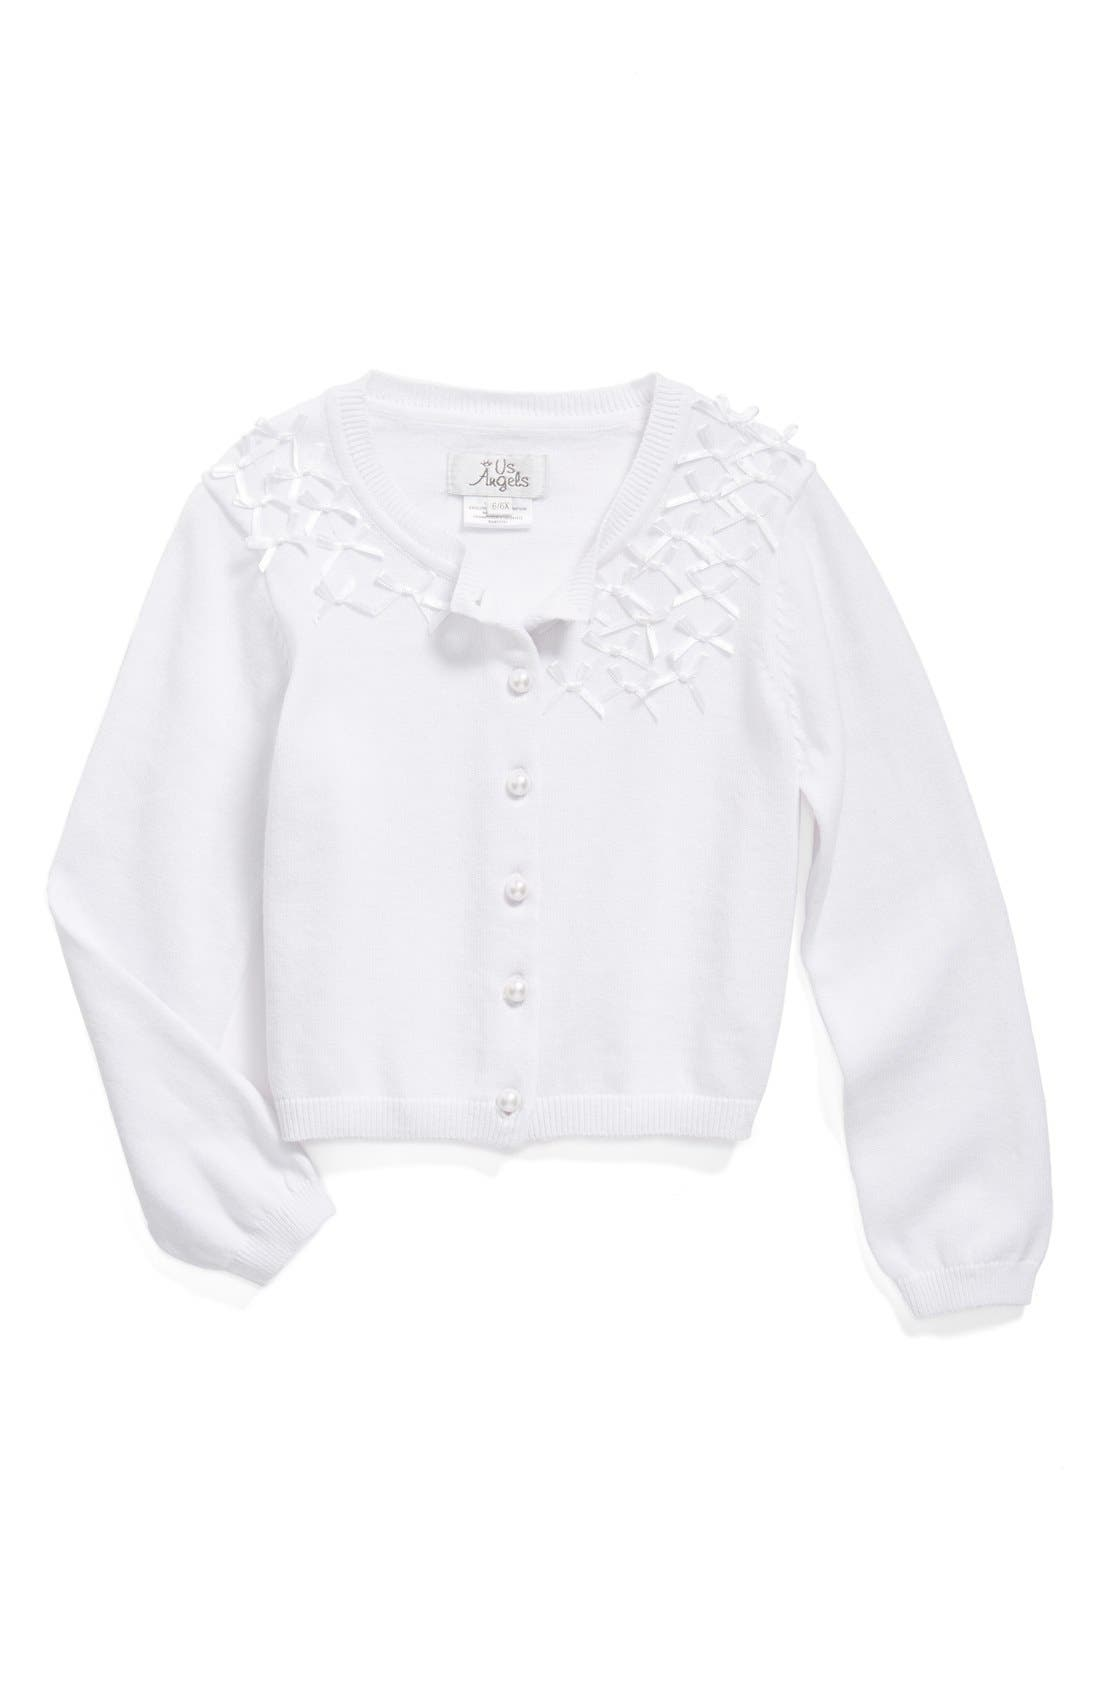 Us Angels Communion Cardigan Sweater (Toddler Girls, Little Girls & Big Girls)